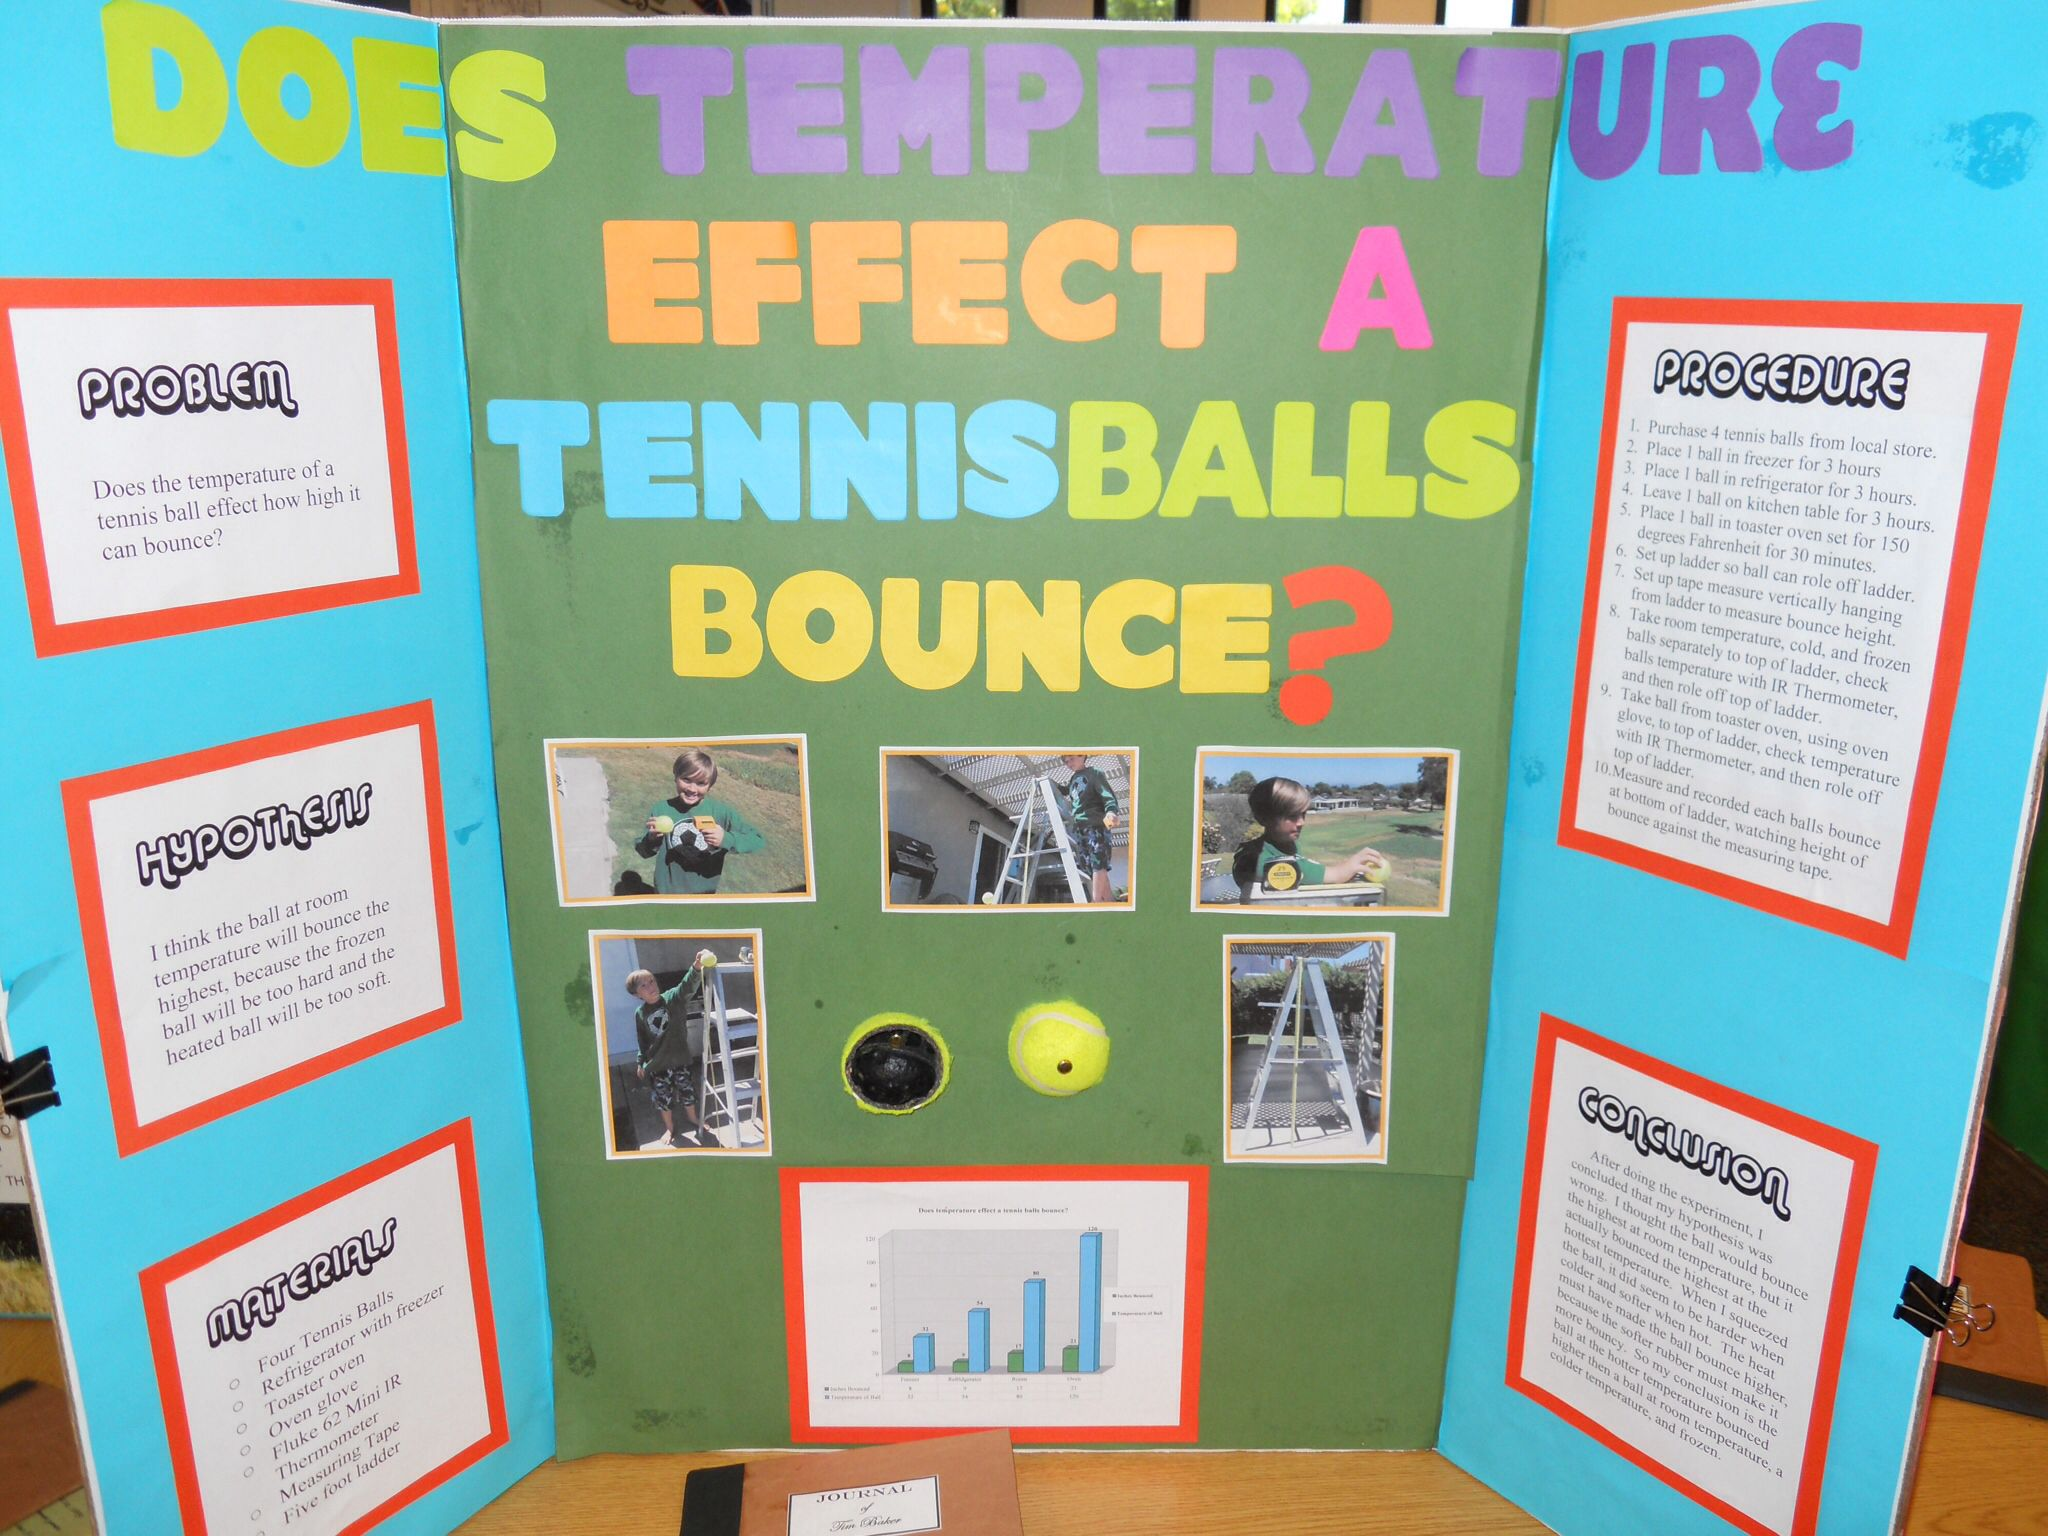 Cool science fair idea | Science fair | Pinterest | Science fair ... for Cool Poster Ideas For School Projects  55dqh